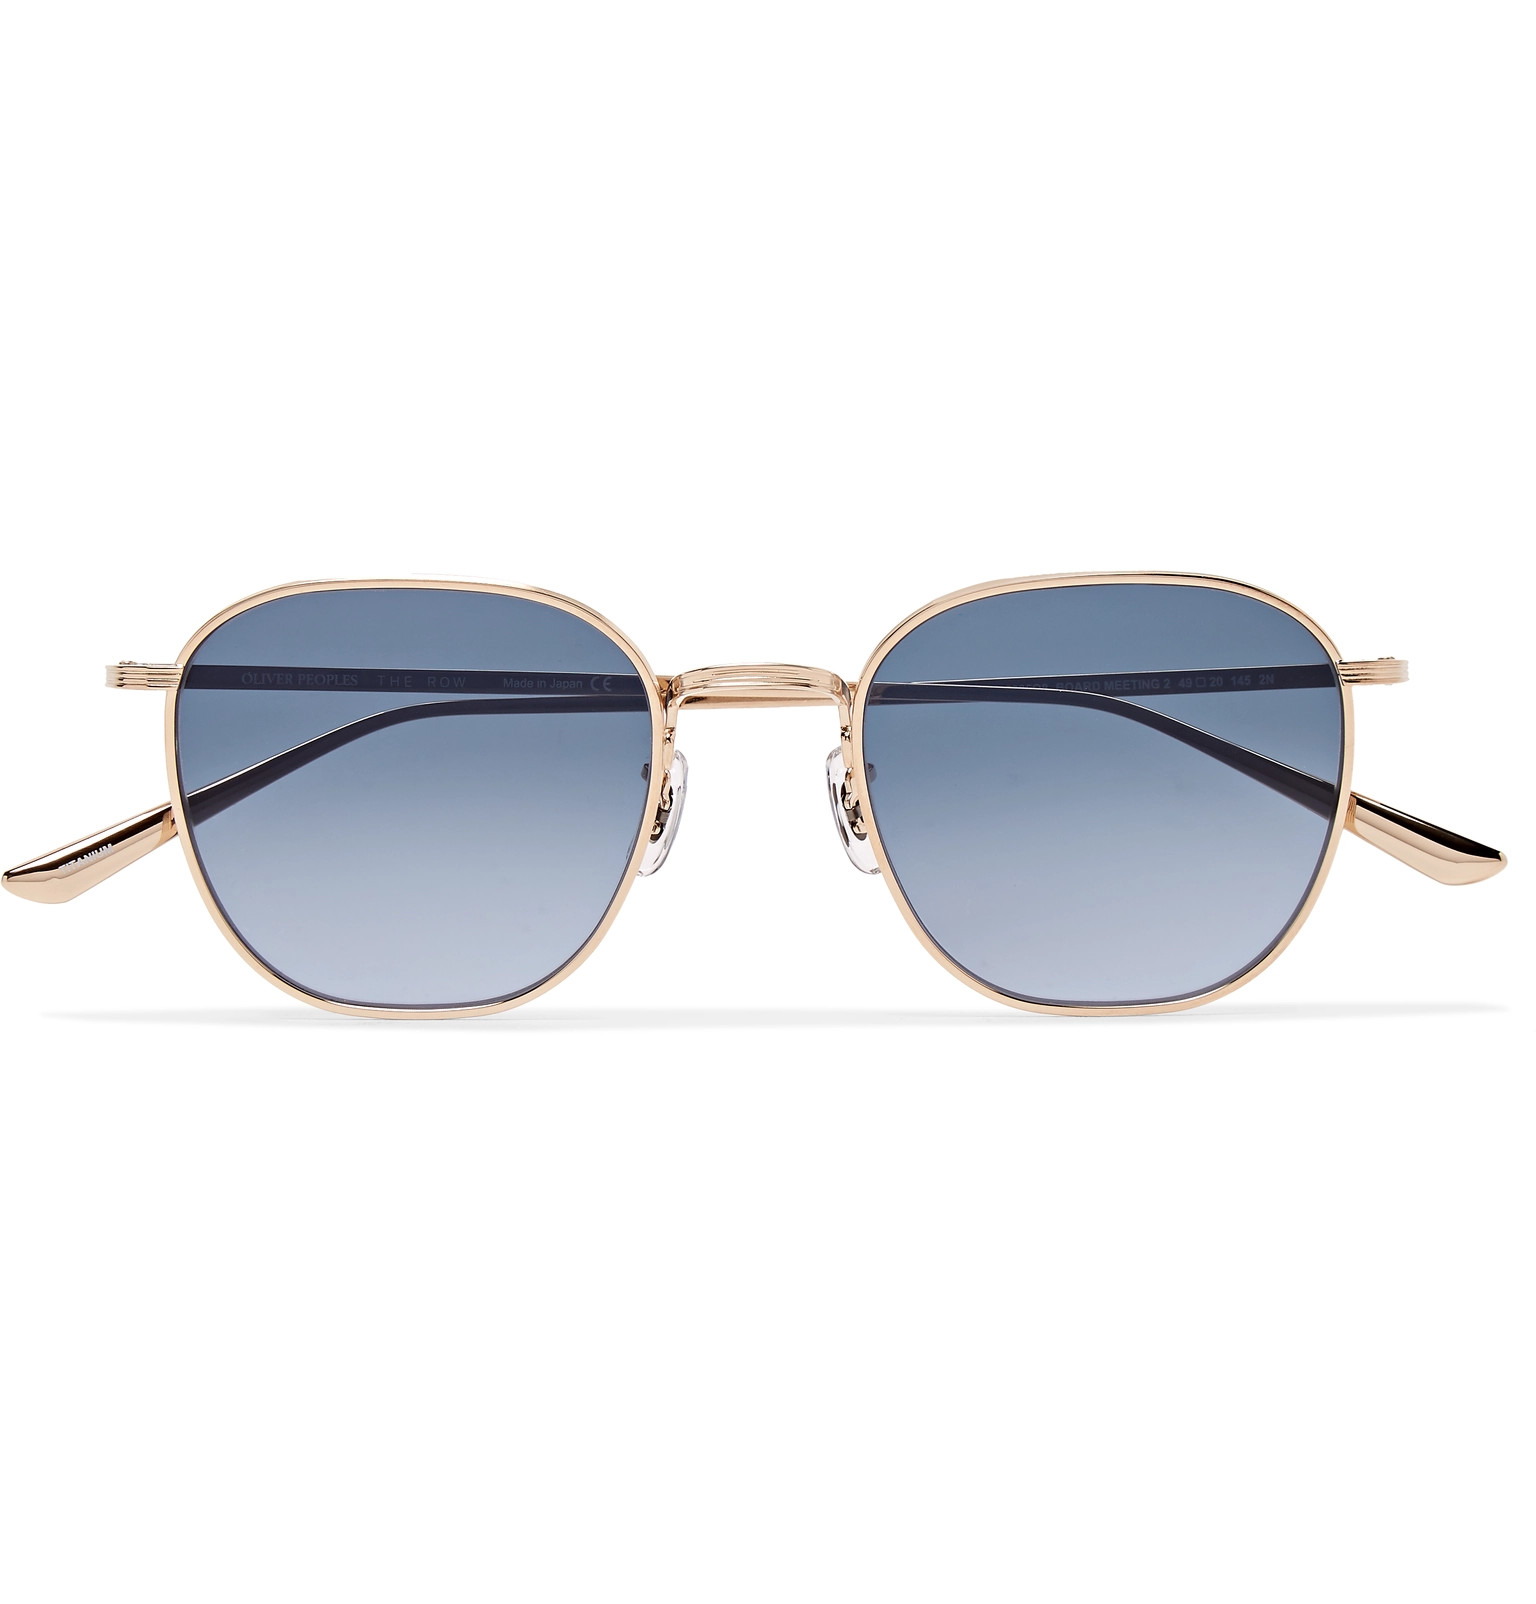 14583a091a3 The Row+ Oliver Peoples Board Meeting 2 Square-Frame Gold-Tone Titanium  Photochromic Sunglasses